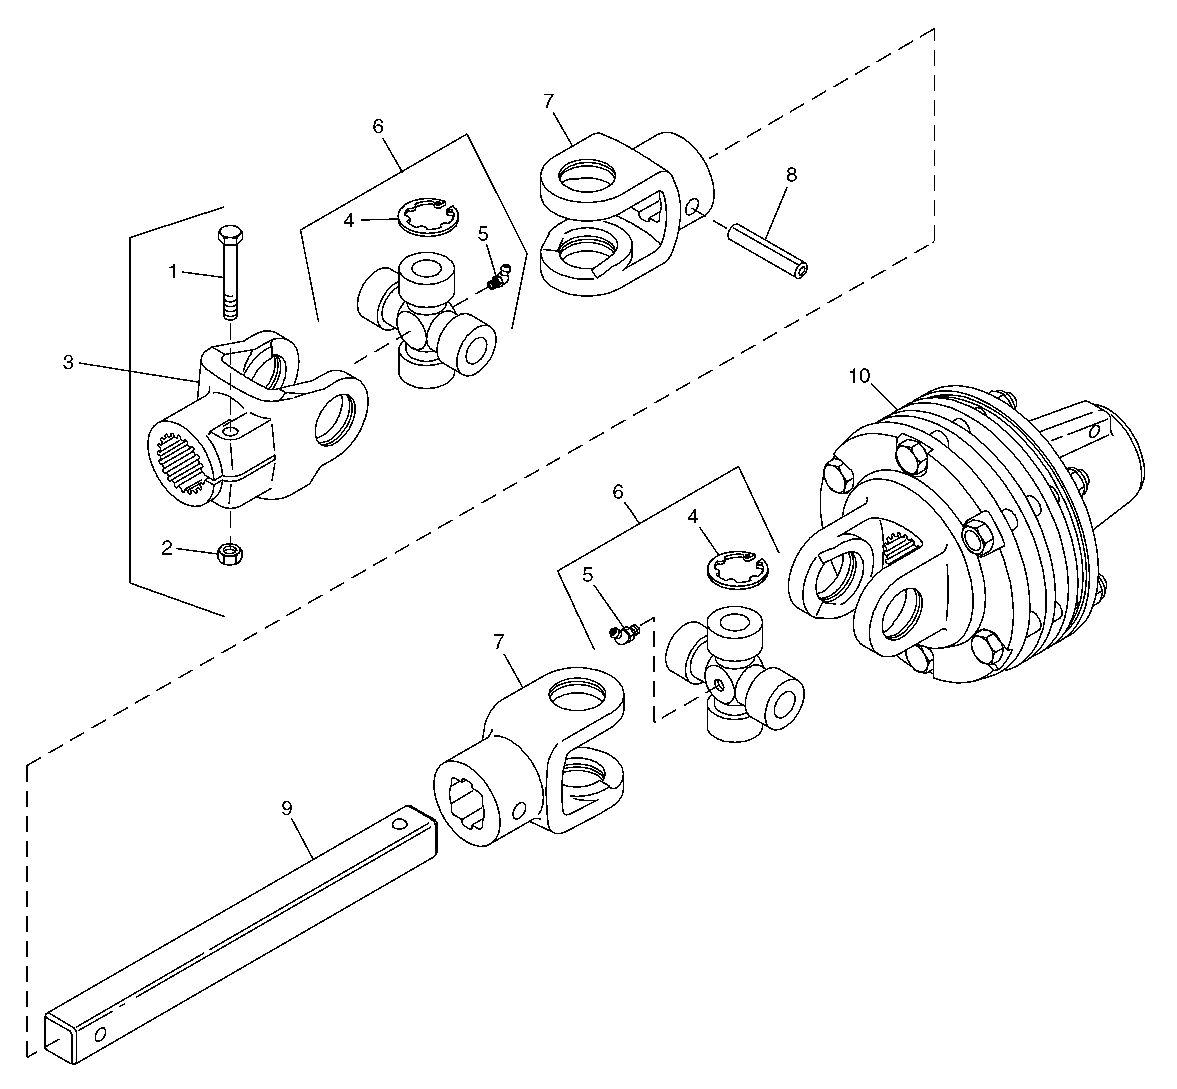 Bodine Gear Motor Wiring Diagram Electric Motor Diagram